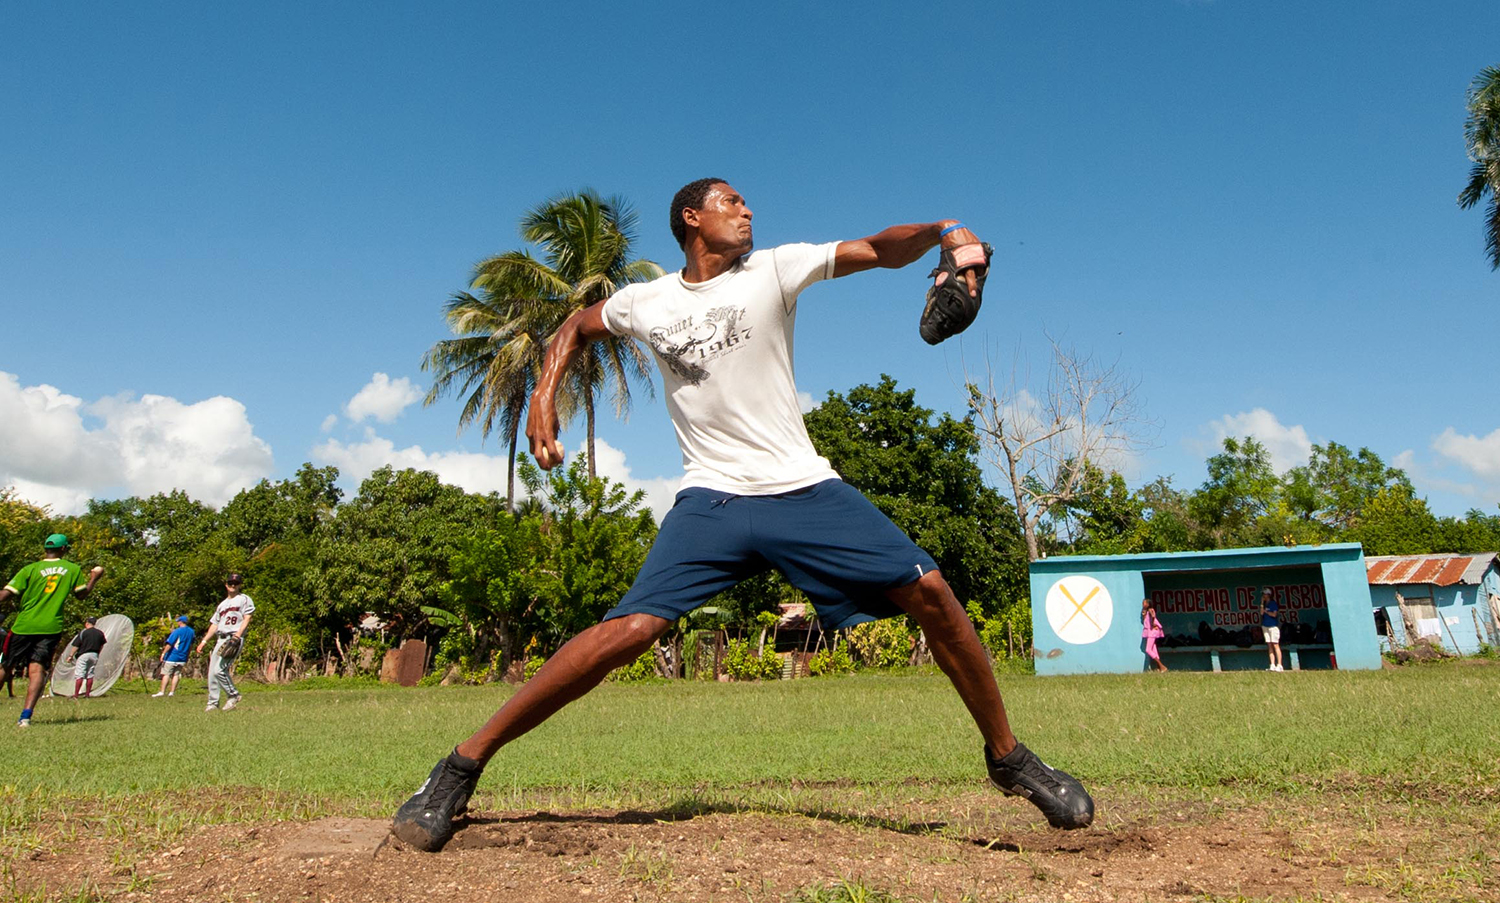 Dominican Baseball Outreach